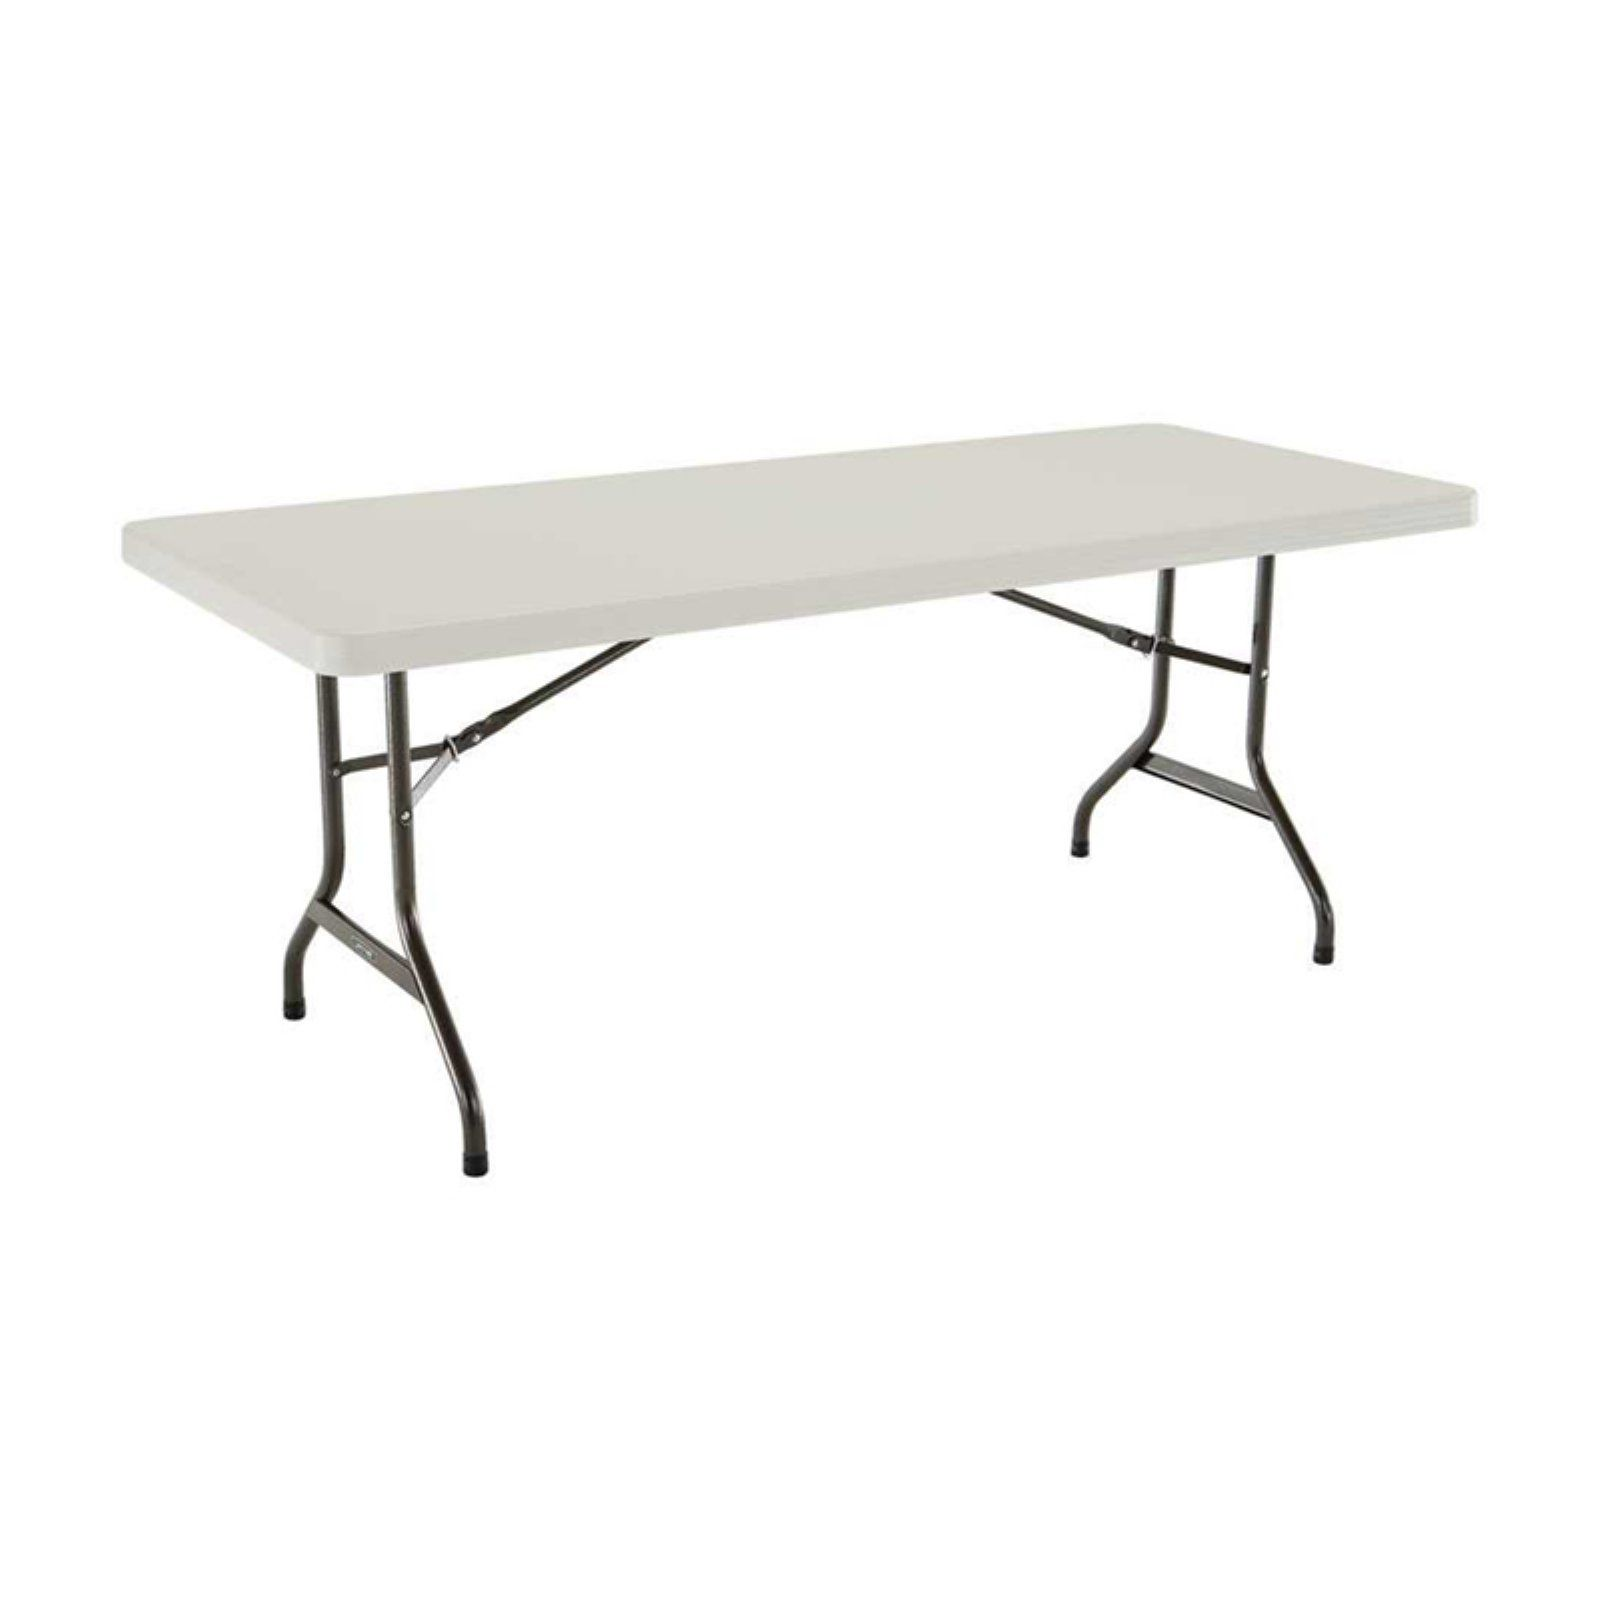 Lifetime 6 Ft Rectangle Commercial Folding Table White With